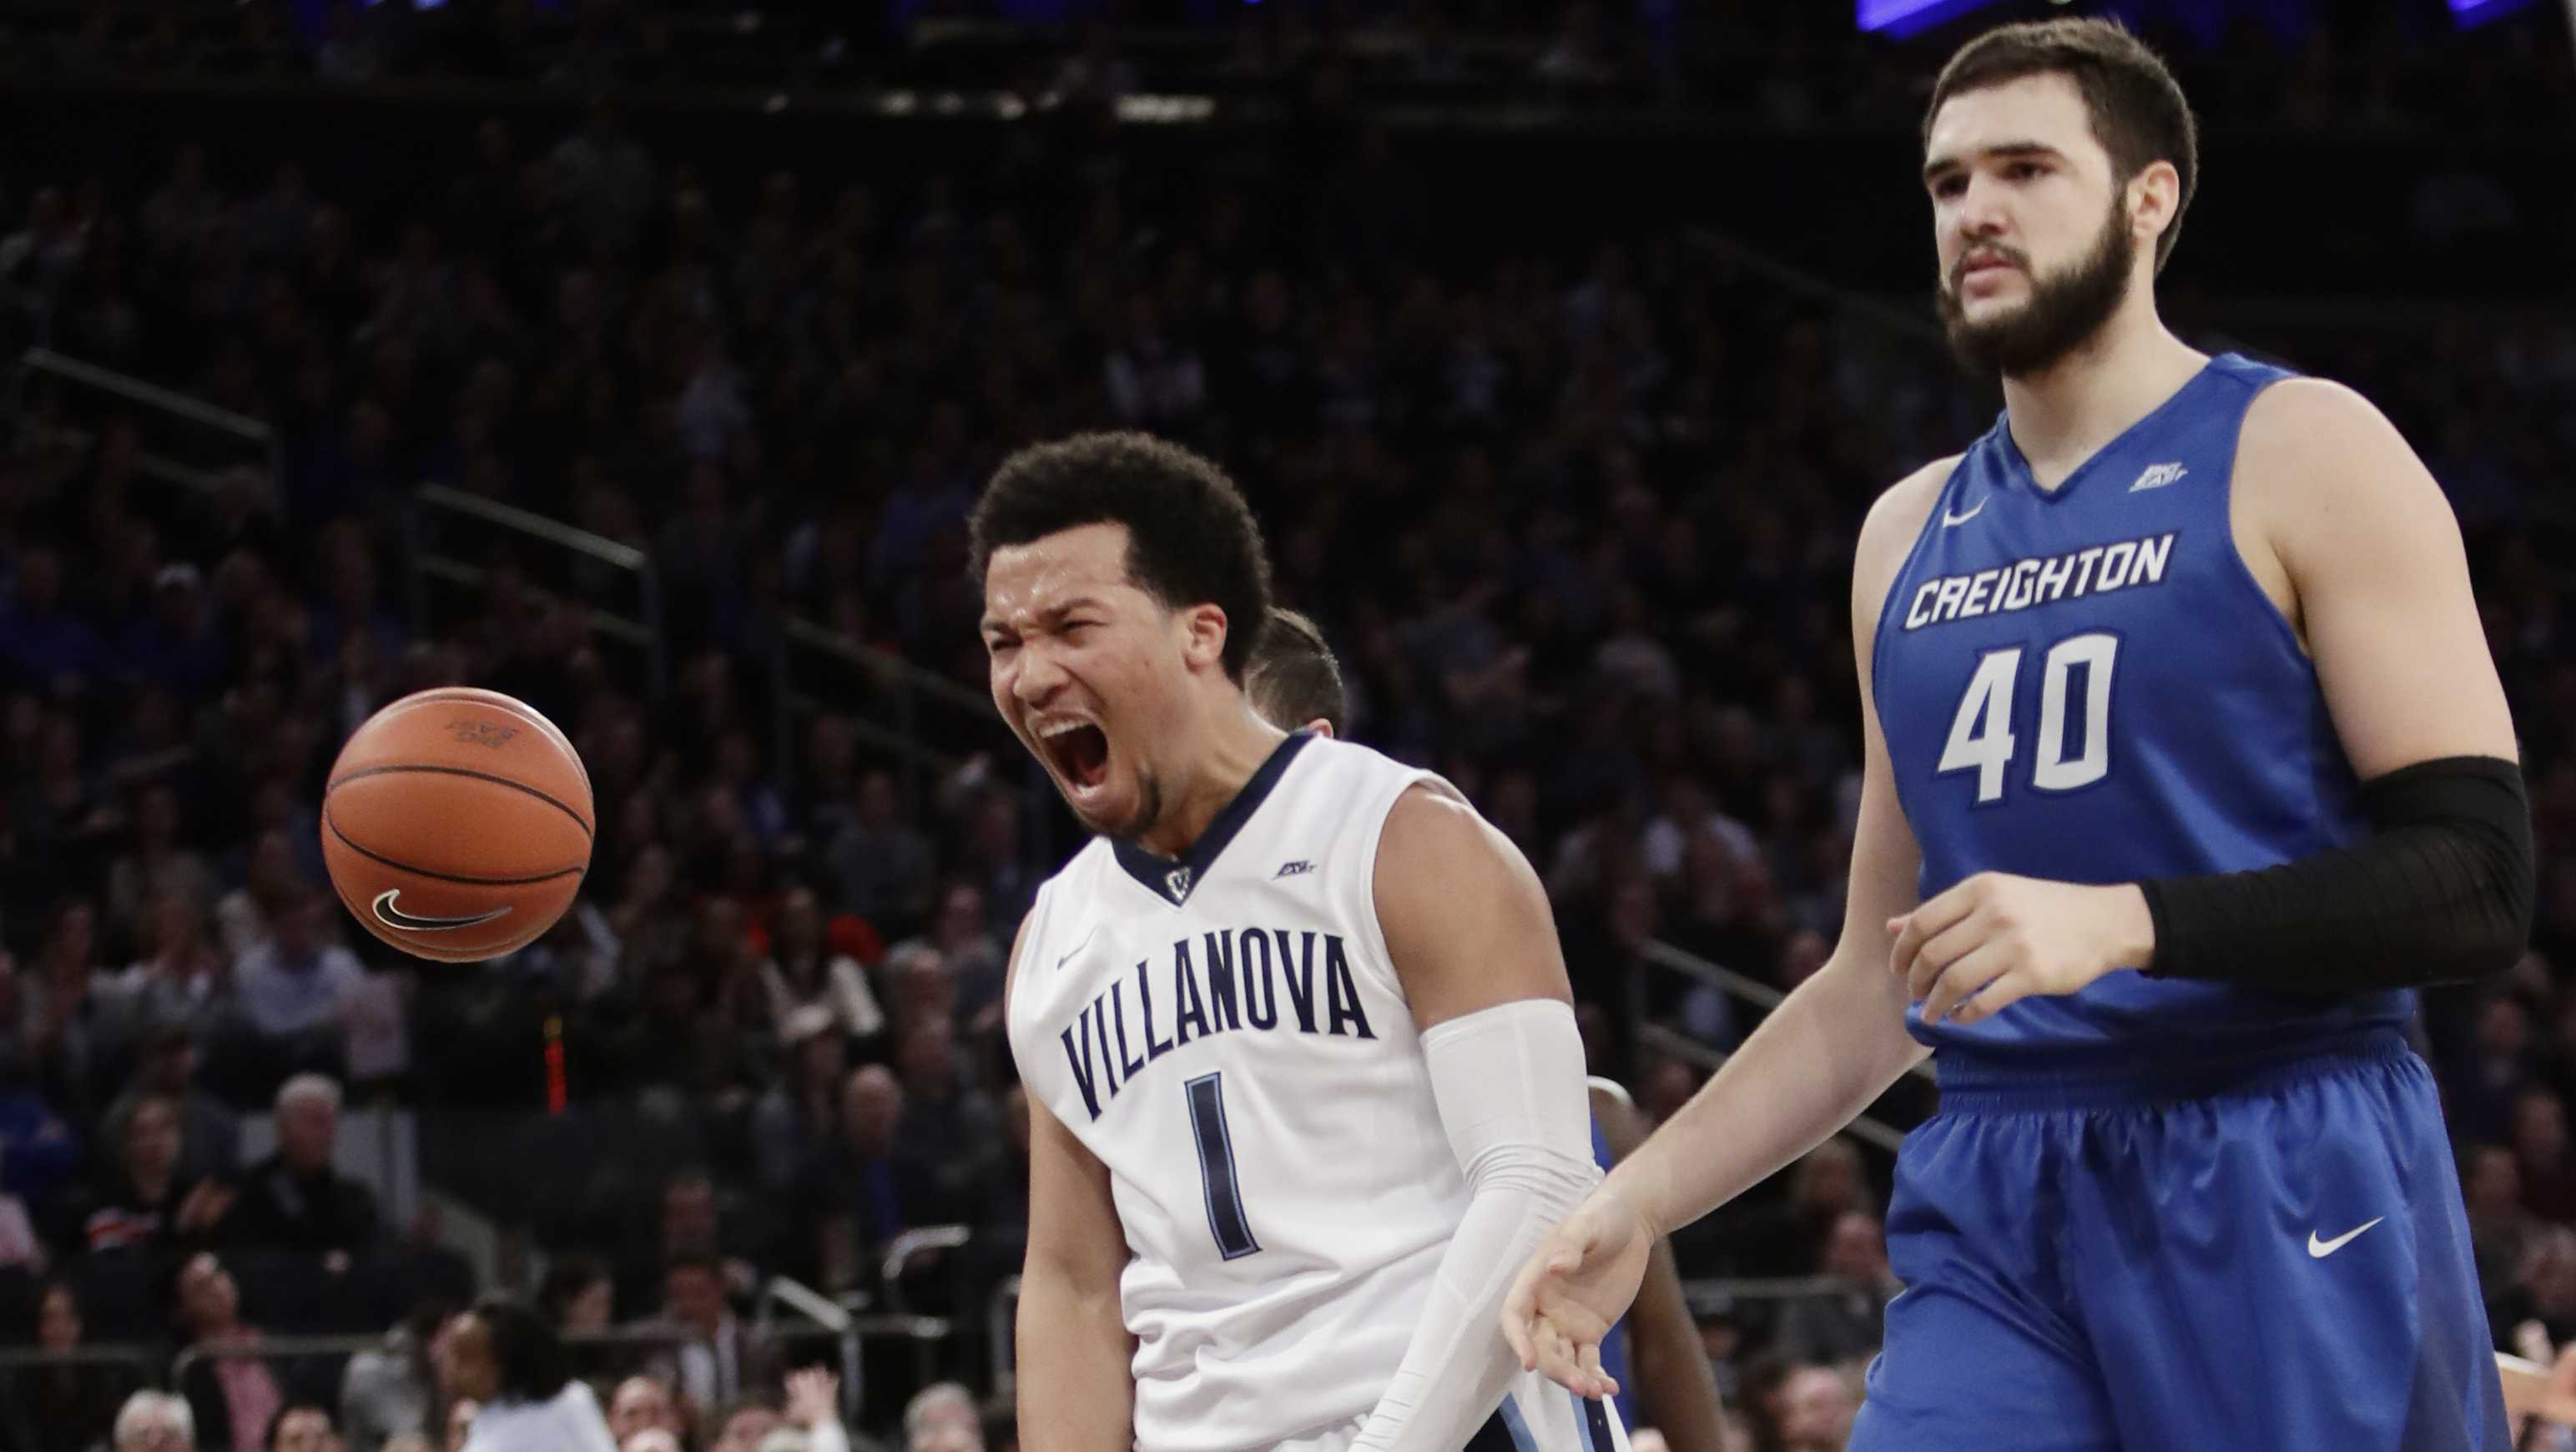 Villanova's Jalen Brunson (1) celebrates after scoring as Creighton's Zach Hanson (40) reacts during the first half of a championship NCAA college basketball game in the finals of the Big East men's tournament Saturday, March 11, 2017, in New York.